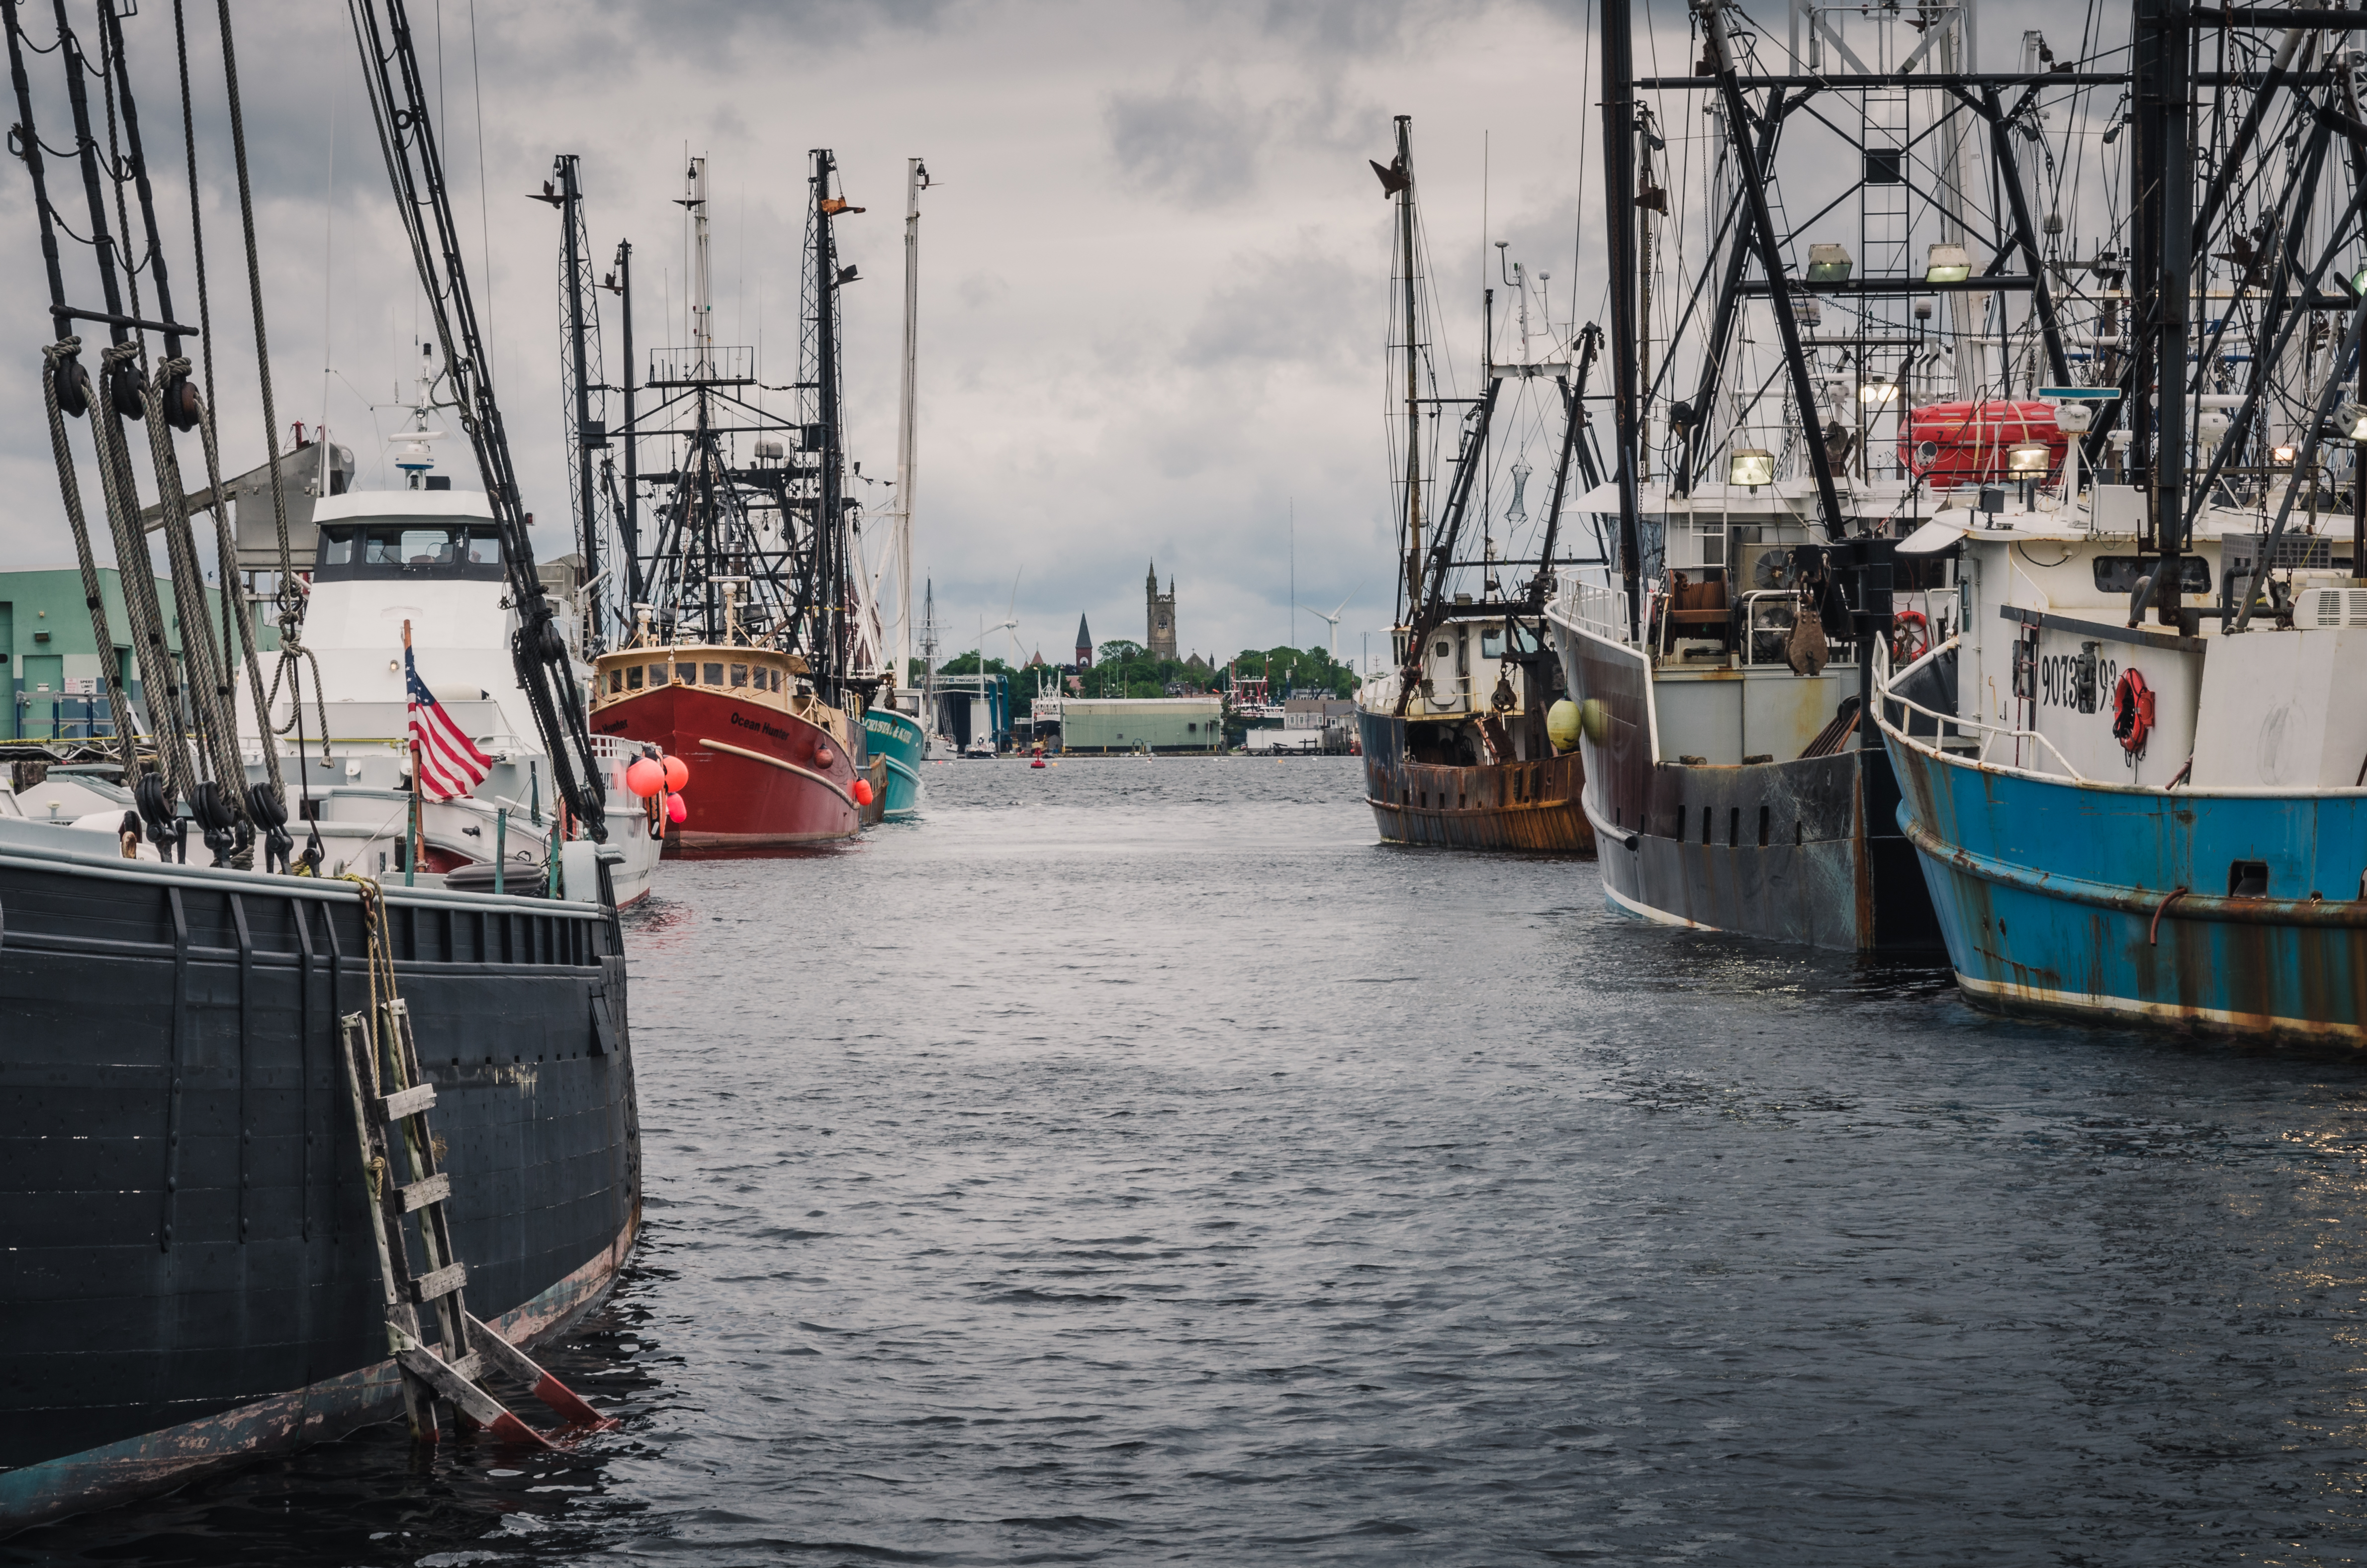 50 fishing businesses based in New Bedford, Mass. have signed onto a federal lawsuit over offshore wind construction